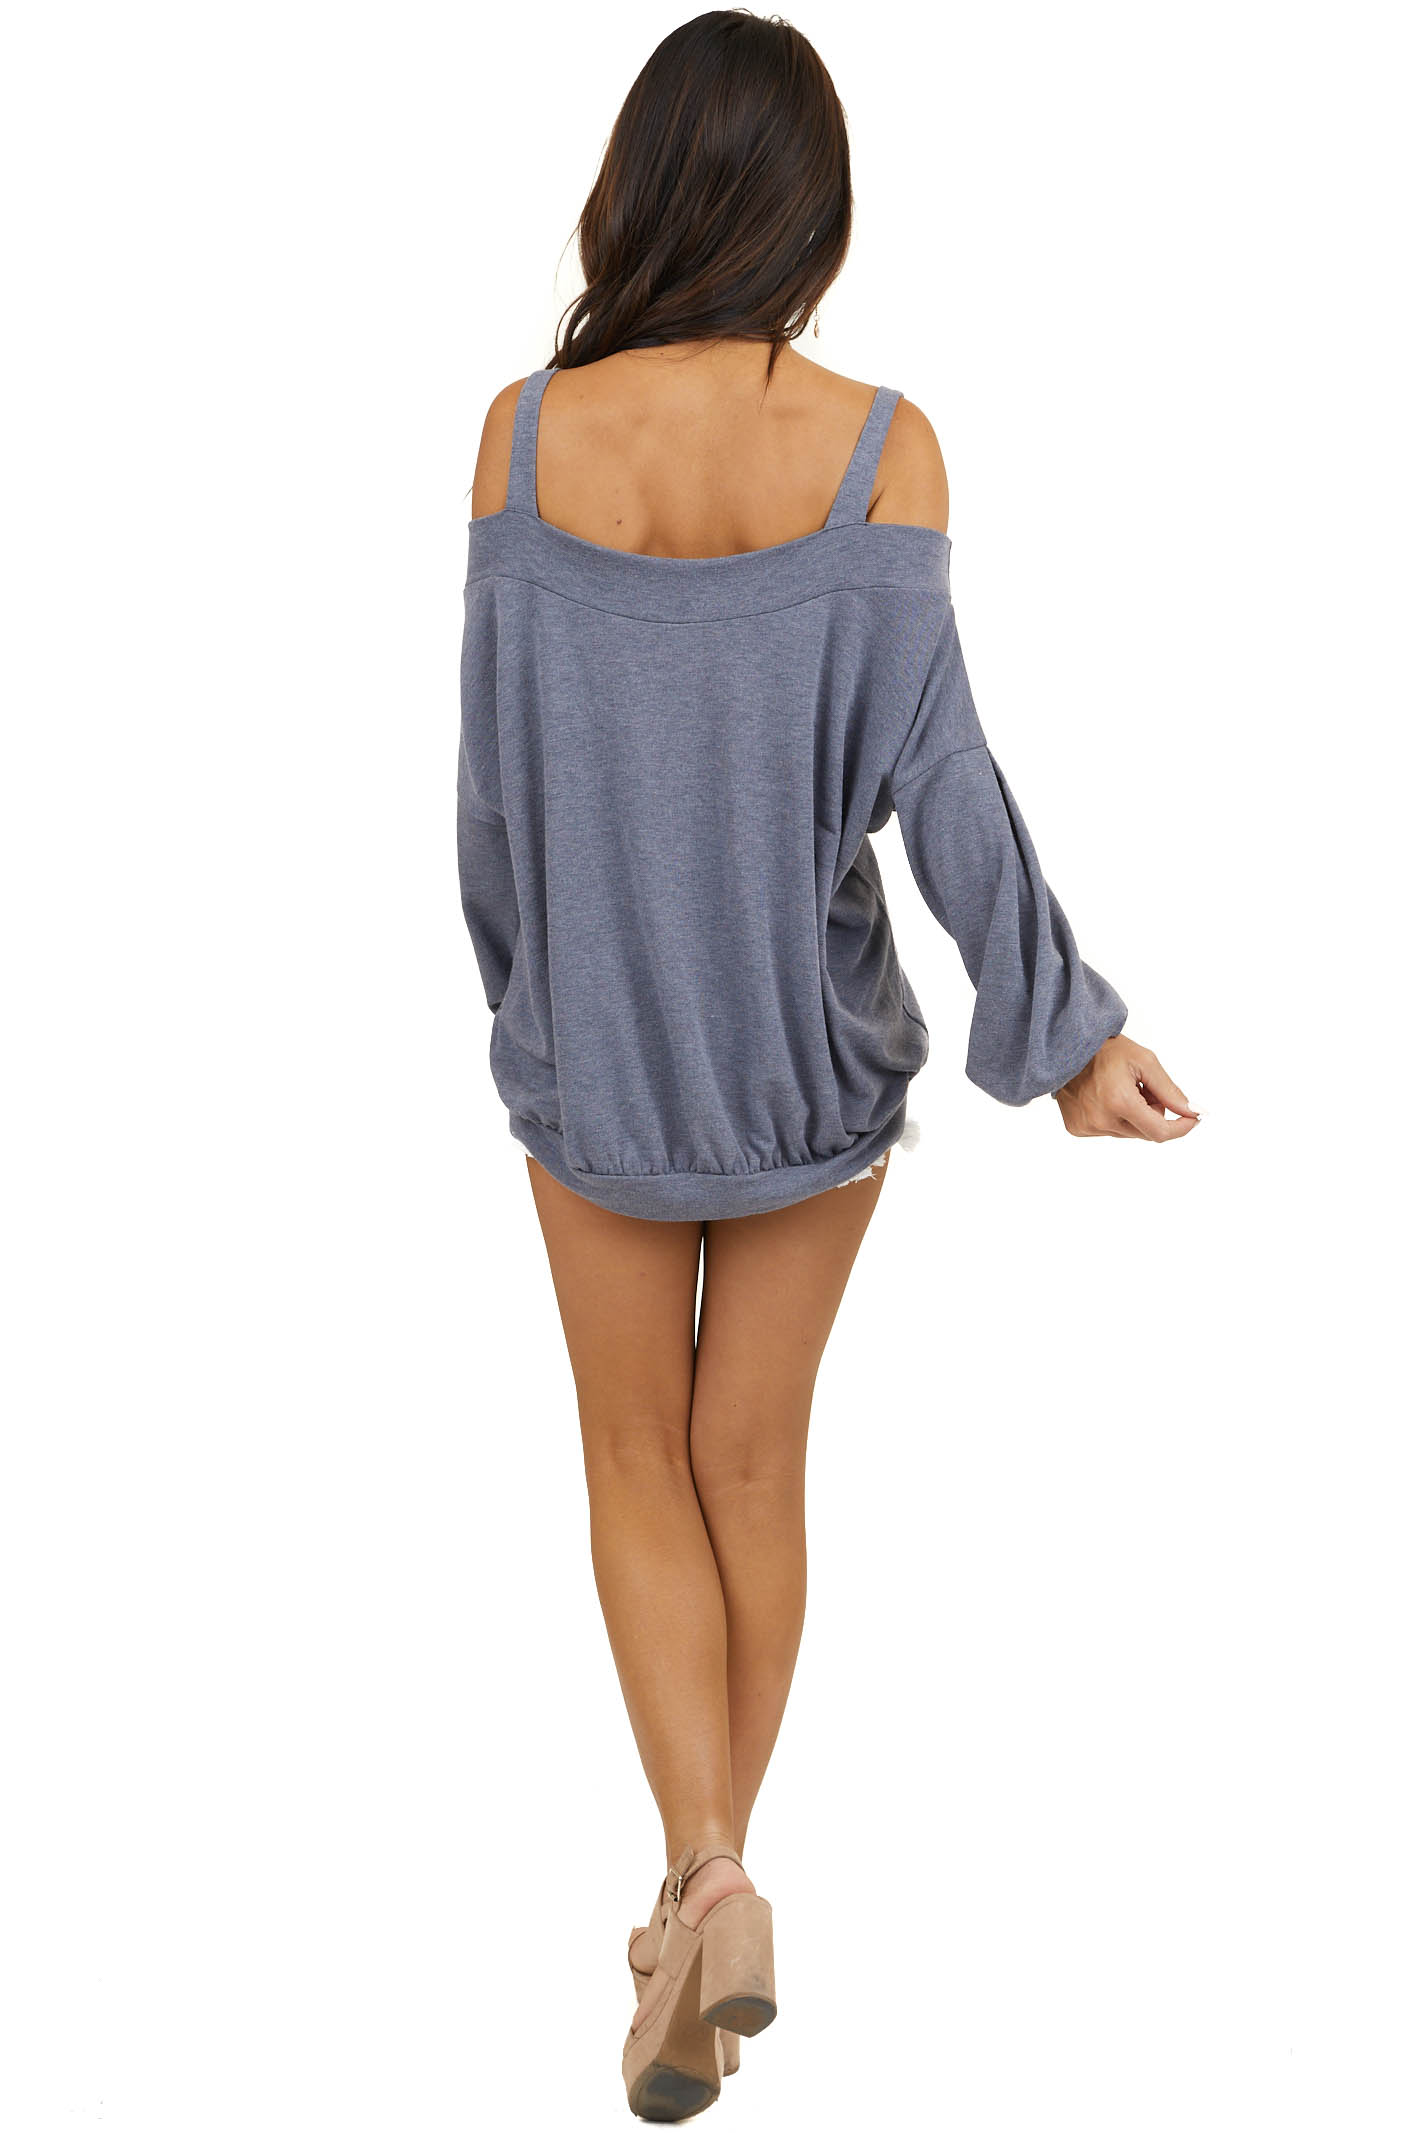 Dusty Navy Cold Shoulder Knit Top with Long Bubble Sleeves